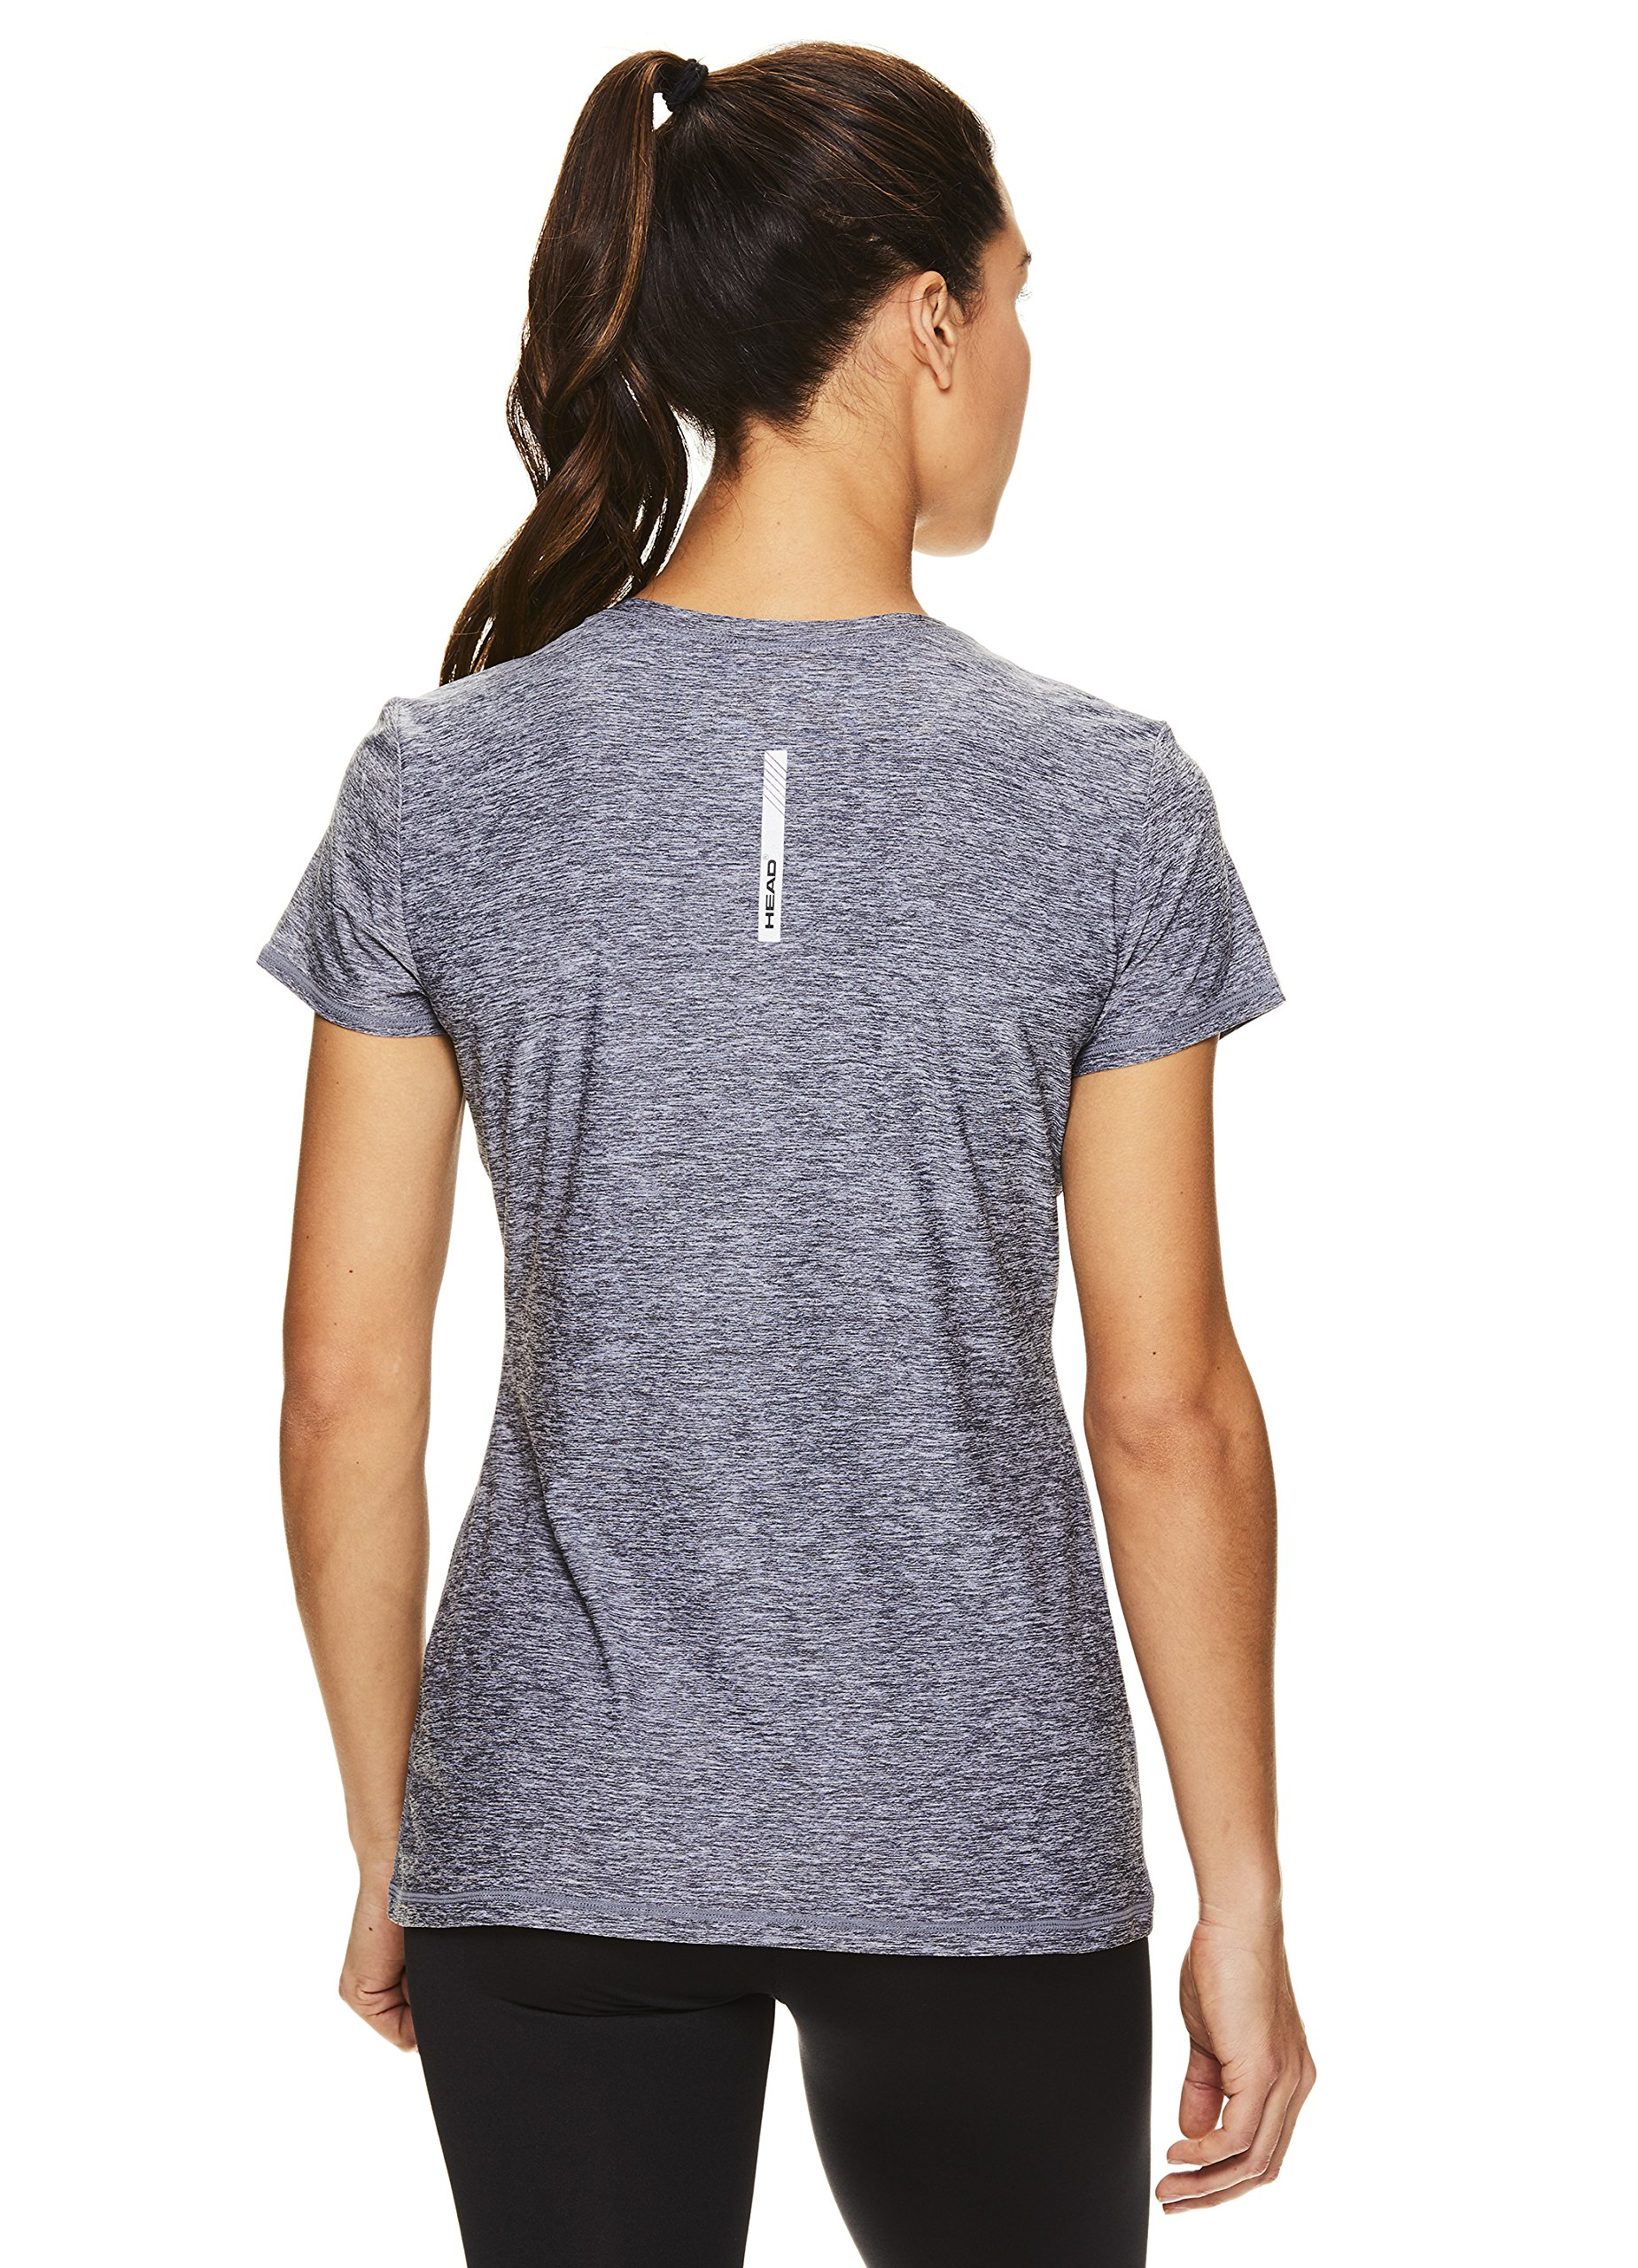 HEAD Women's High Jump Short Sleeve Workout T-Shirt - Performance V-Neck Activewear Top - Medium Grey Heather, X-Small by HEAD (Image #3)